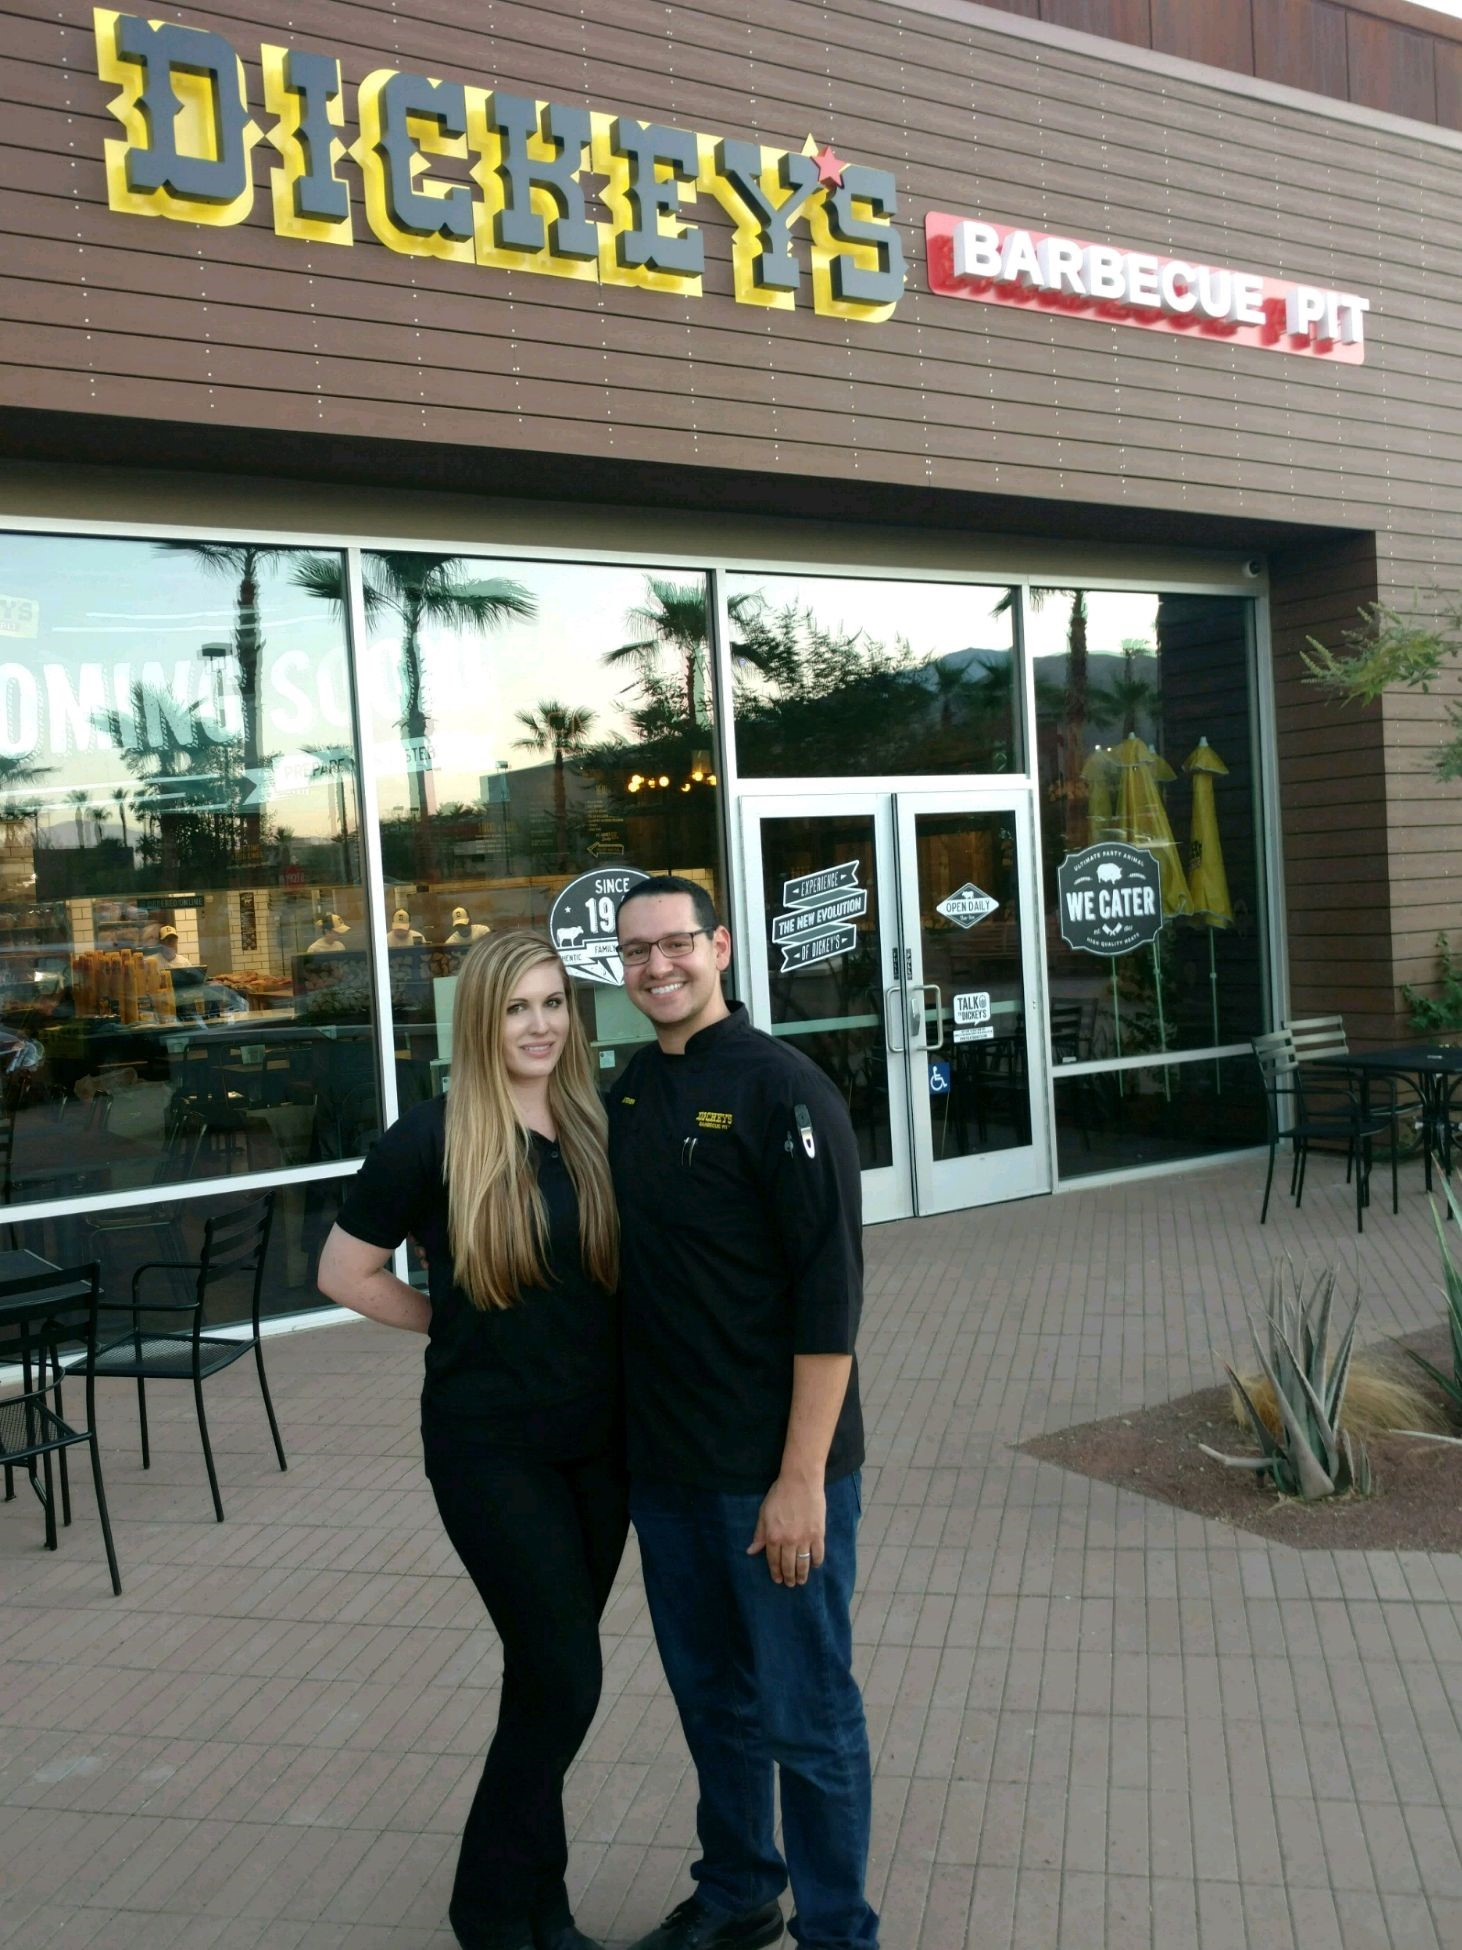 The Desert Sun: A new Dickey's Barbecue Pit opens in Rancho Mirage this week and you could win free food for a year